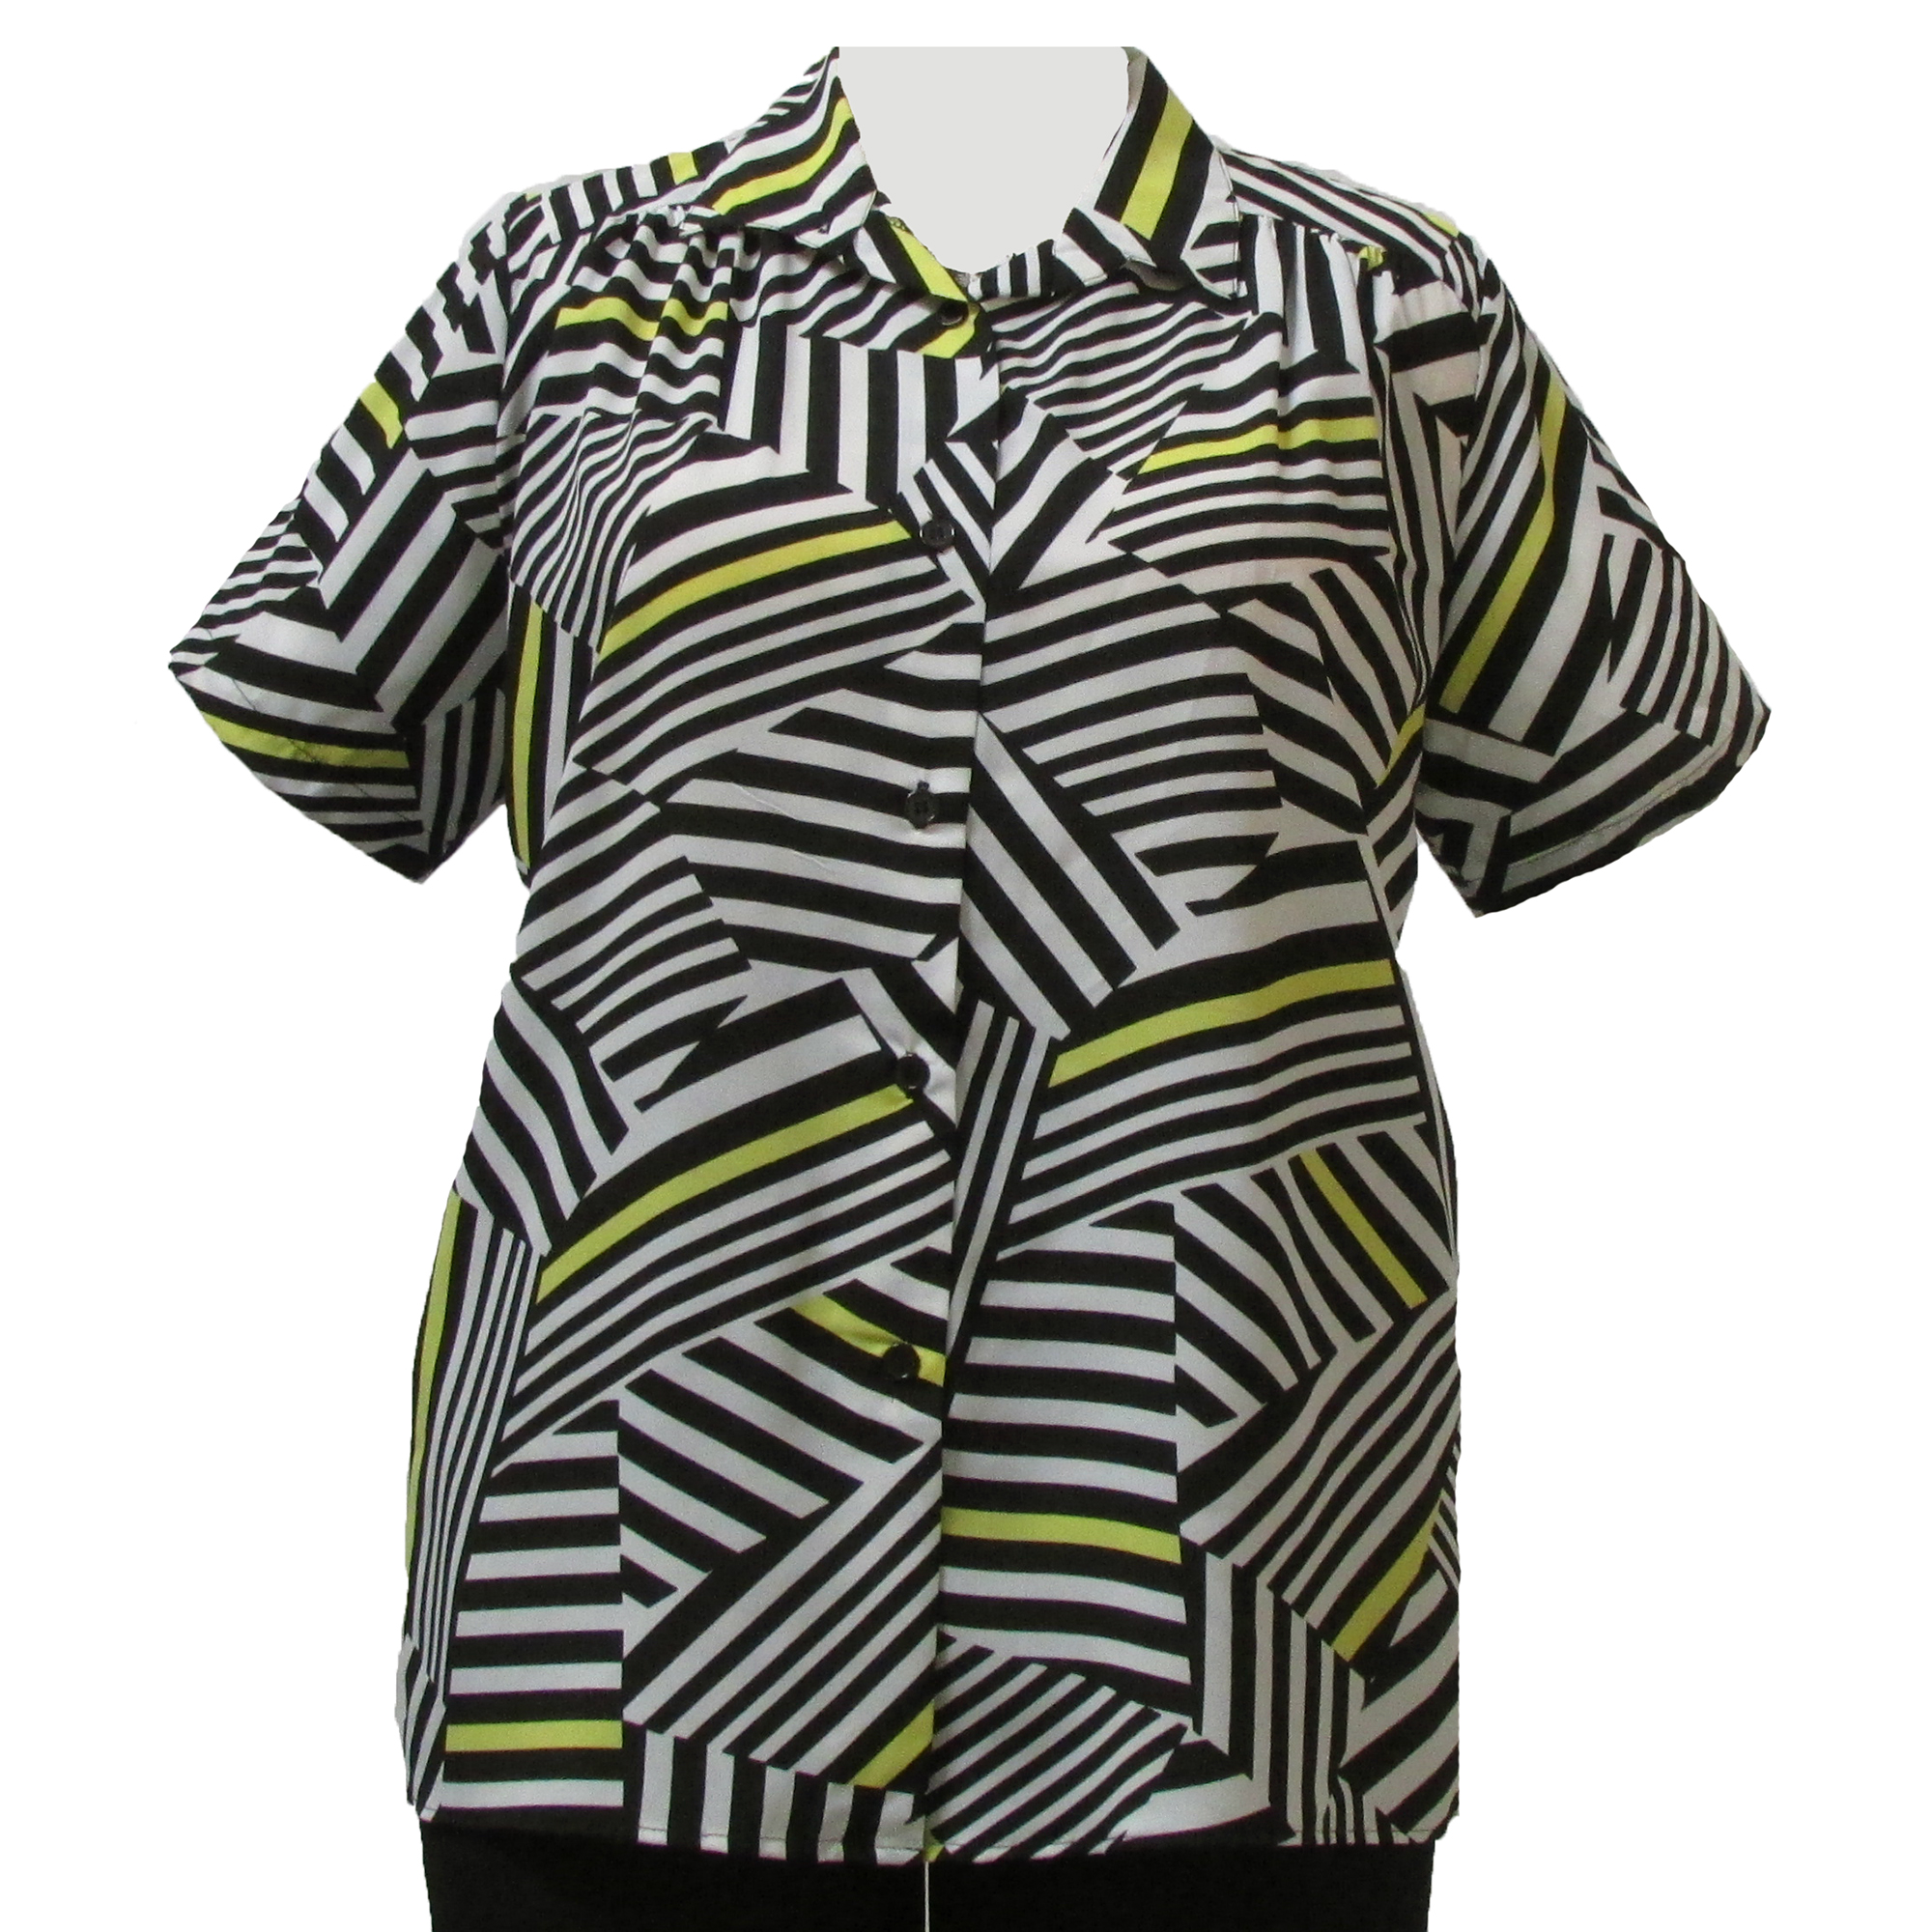 A Personal Touch Black & White Geometric short sleeve tunic with